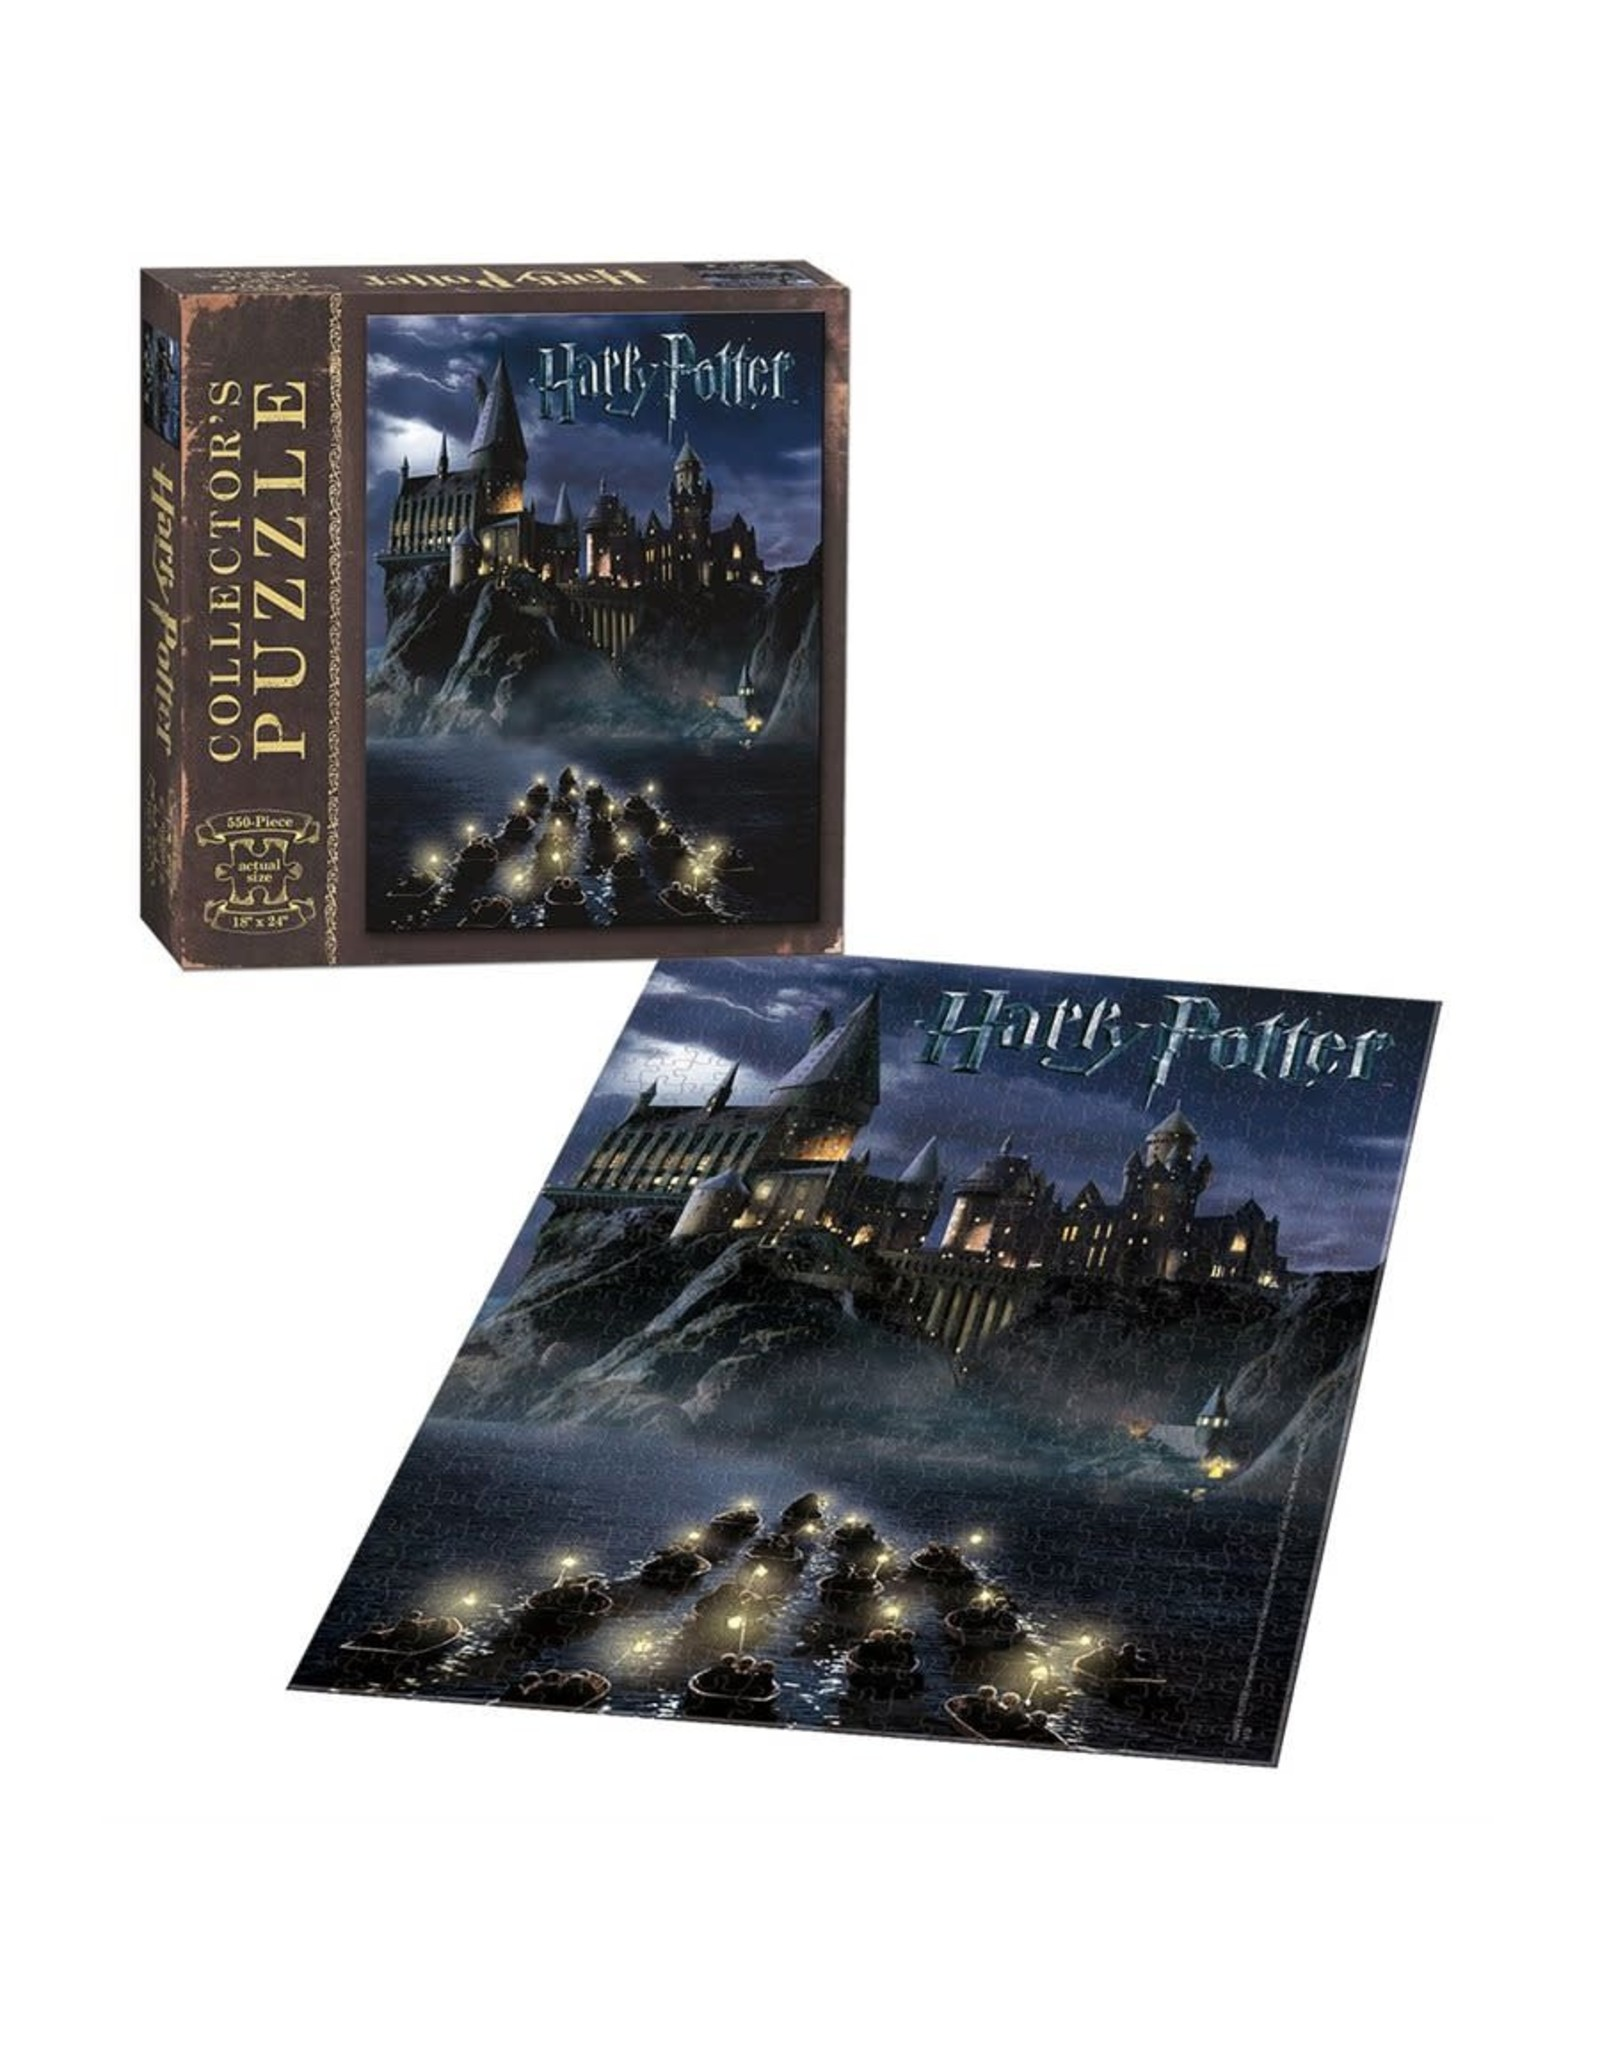 Usaopoly Puzzle: 550 World of Harry Potter